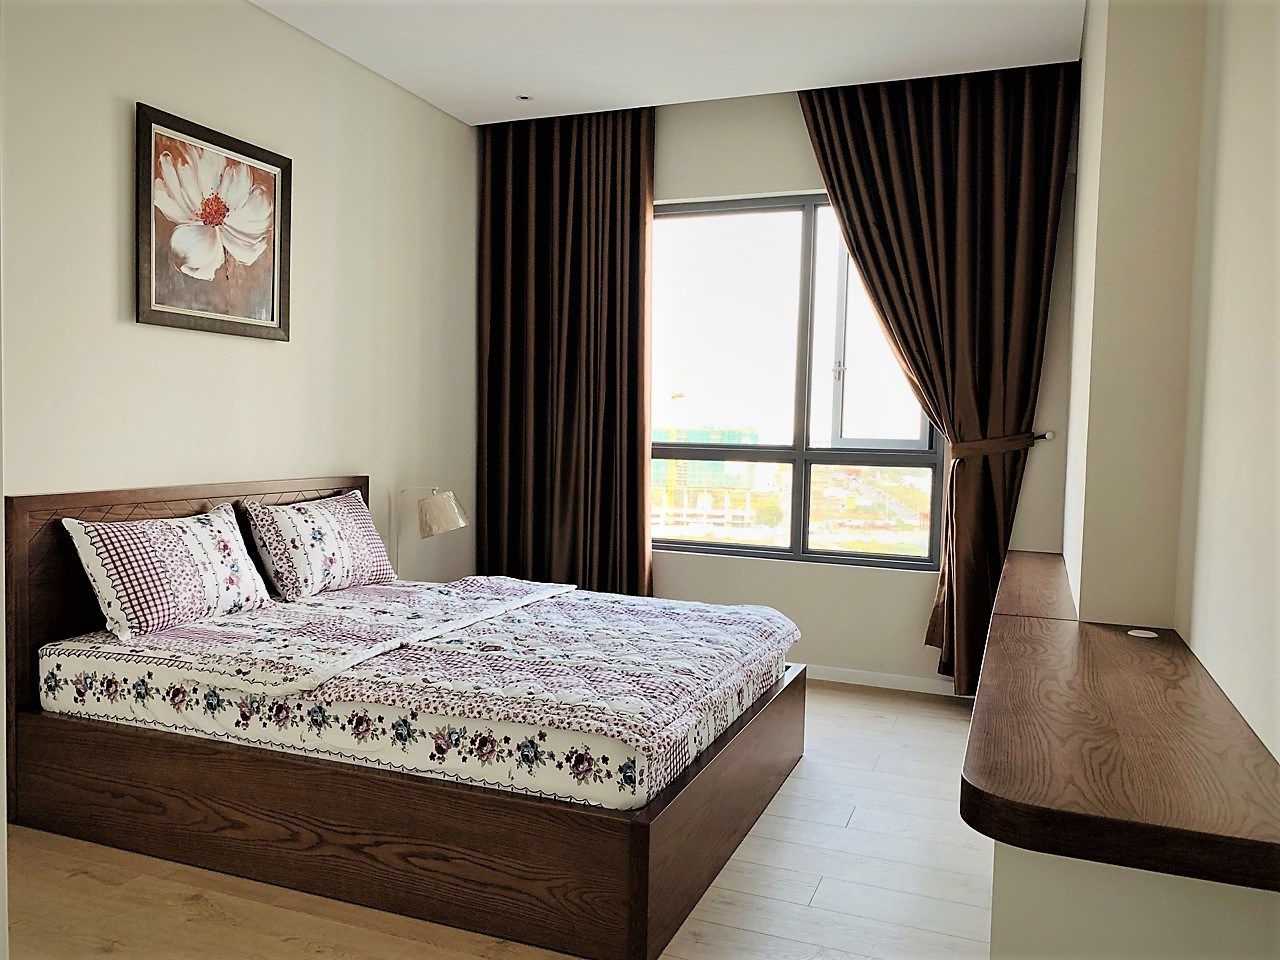 DI0265 - Diamond Island Apartment For Rent & Sale in Ho Chi Minh City - 2 bedroom